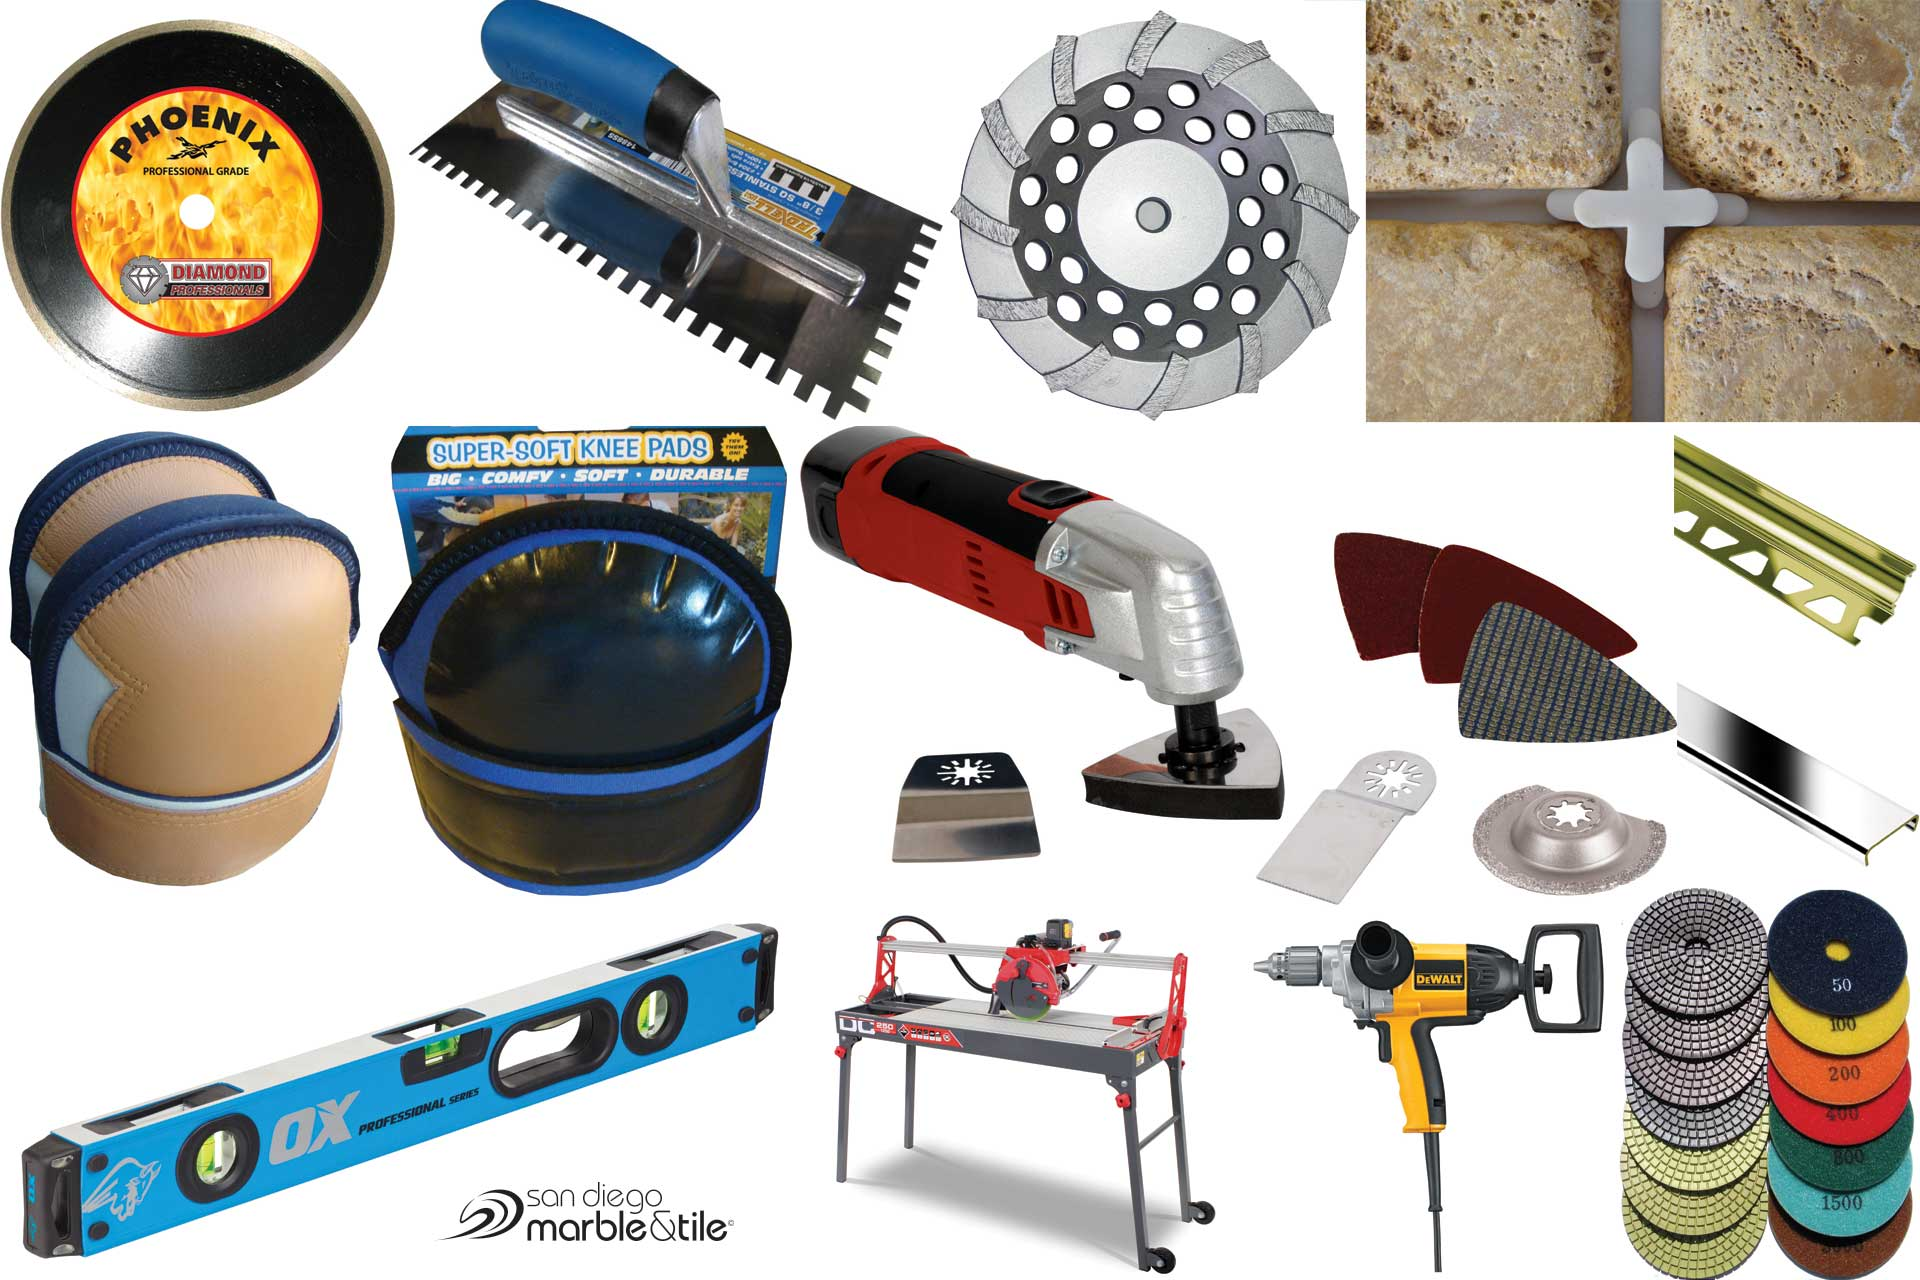 tools & supplies - San Diego Marble & Tile